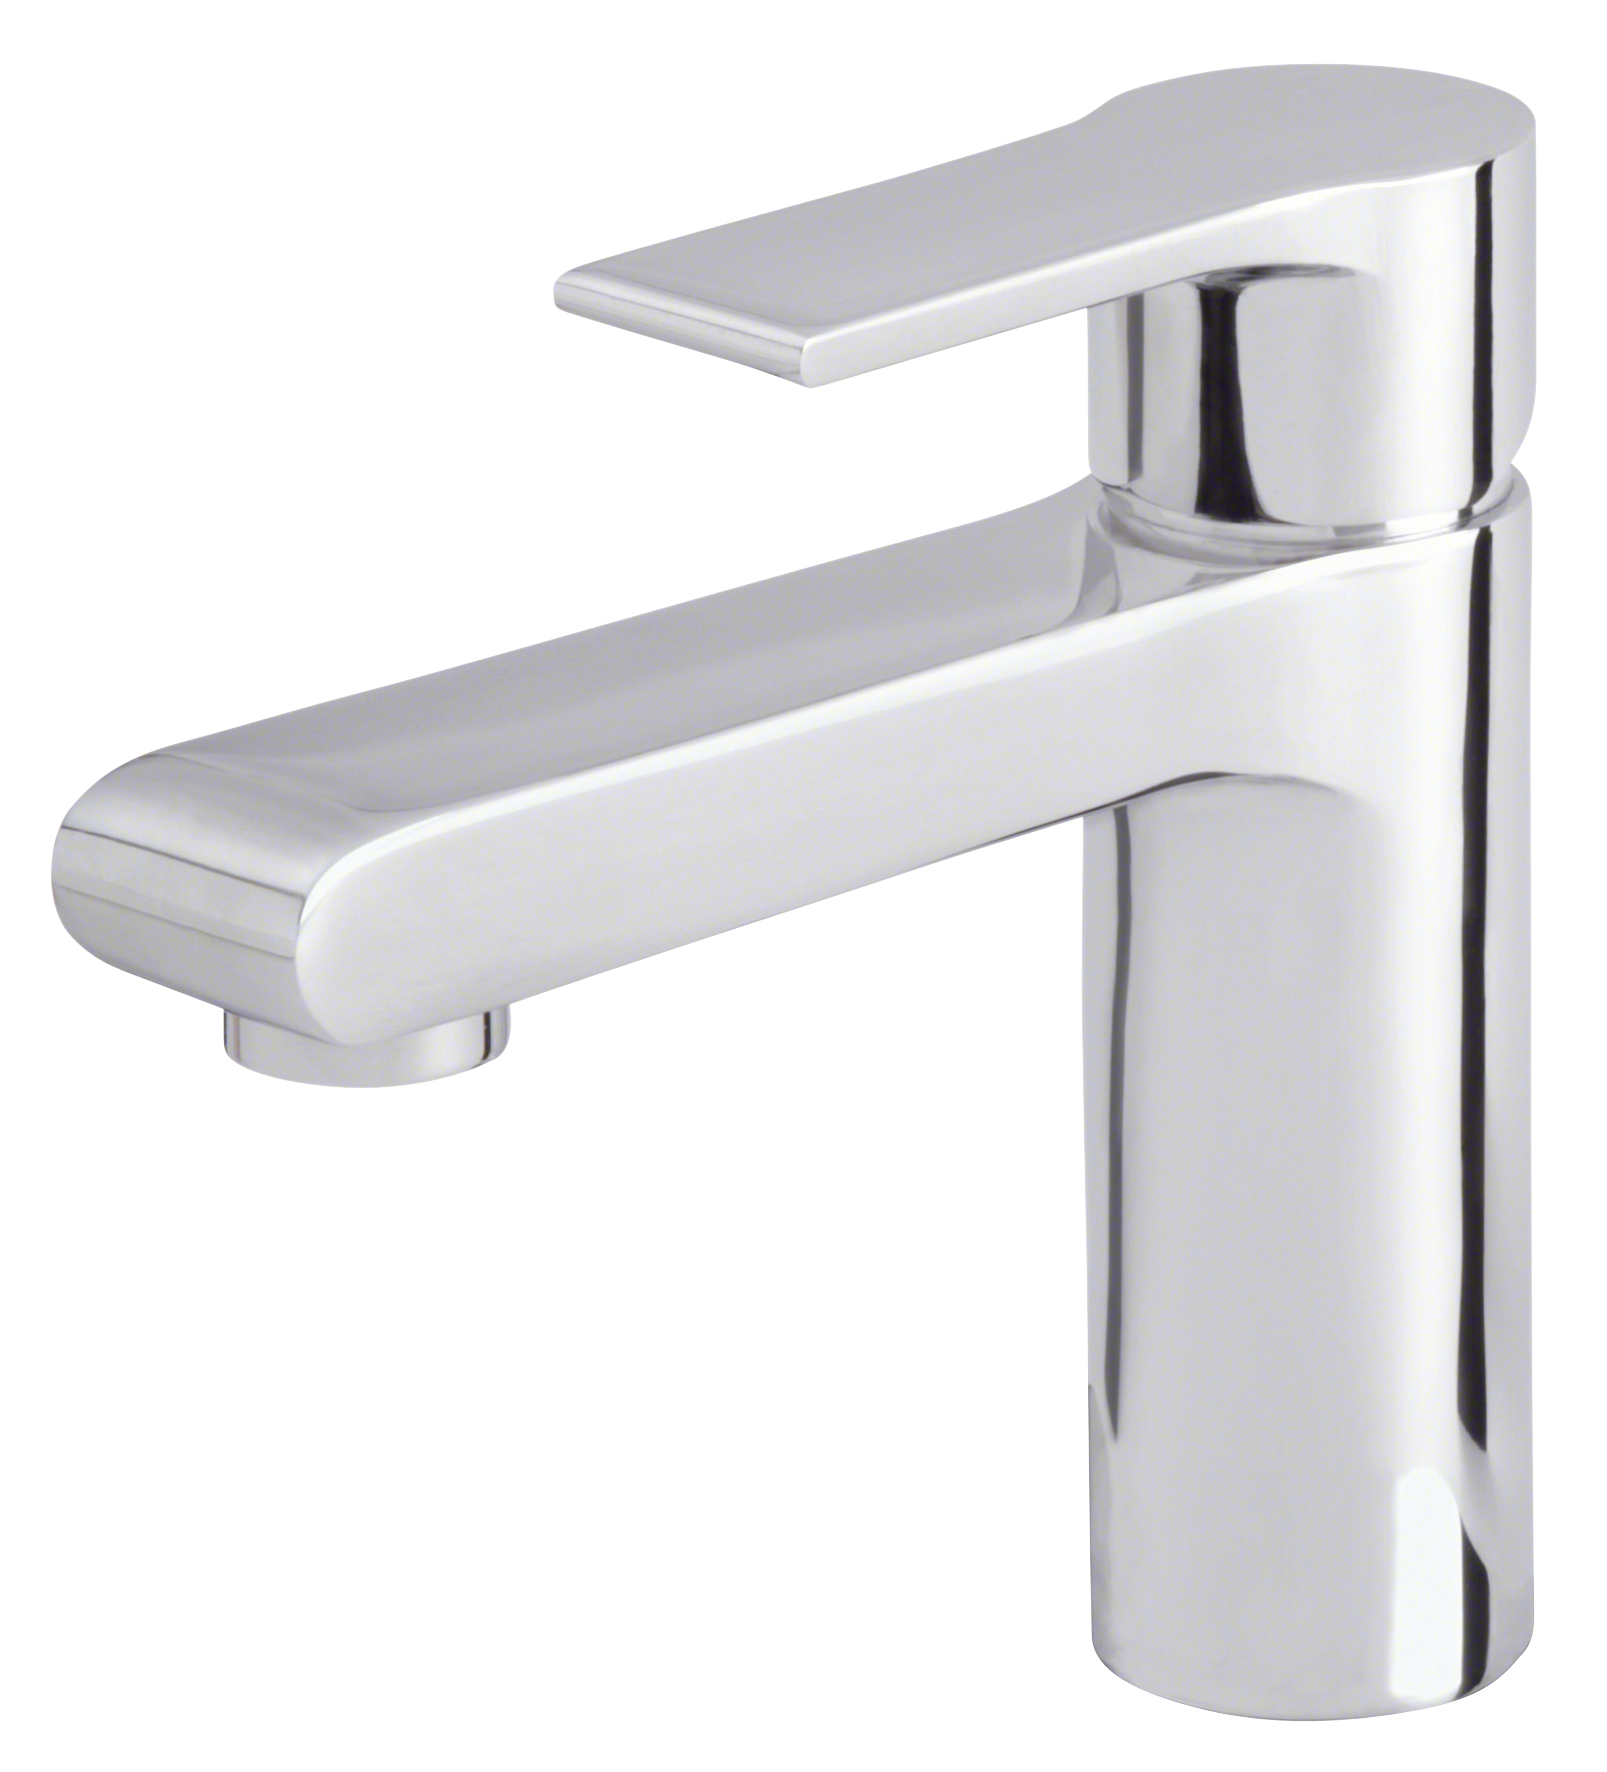 gerber h pull ss stainless faucet kitchen steel faucets out product viper plumbing